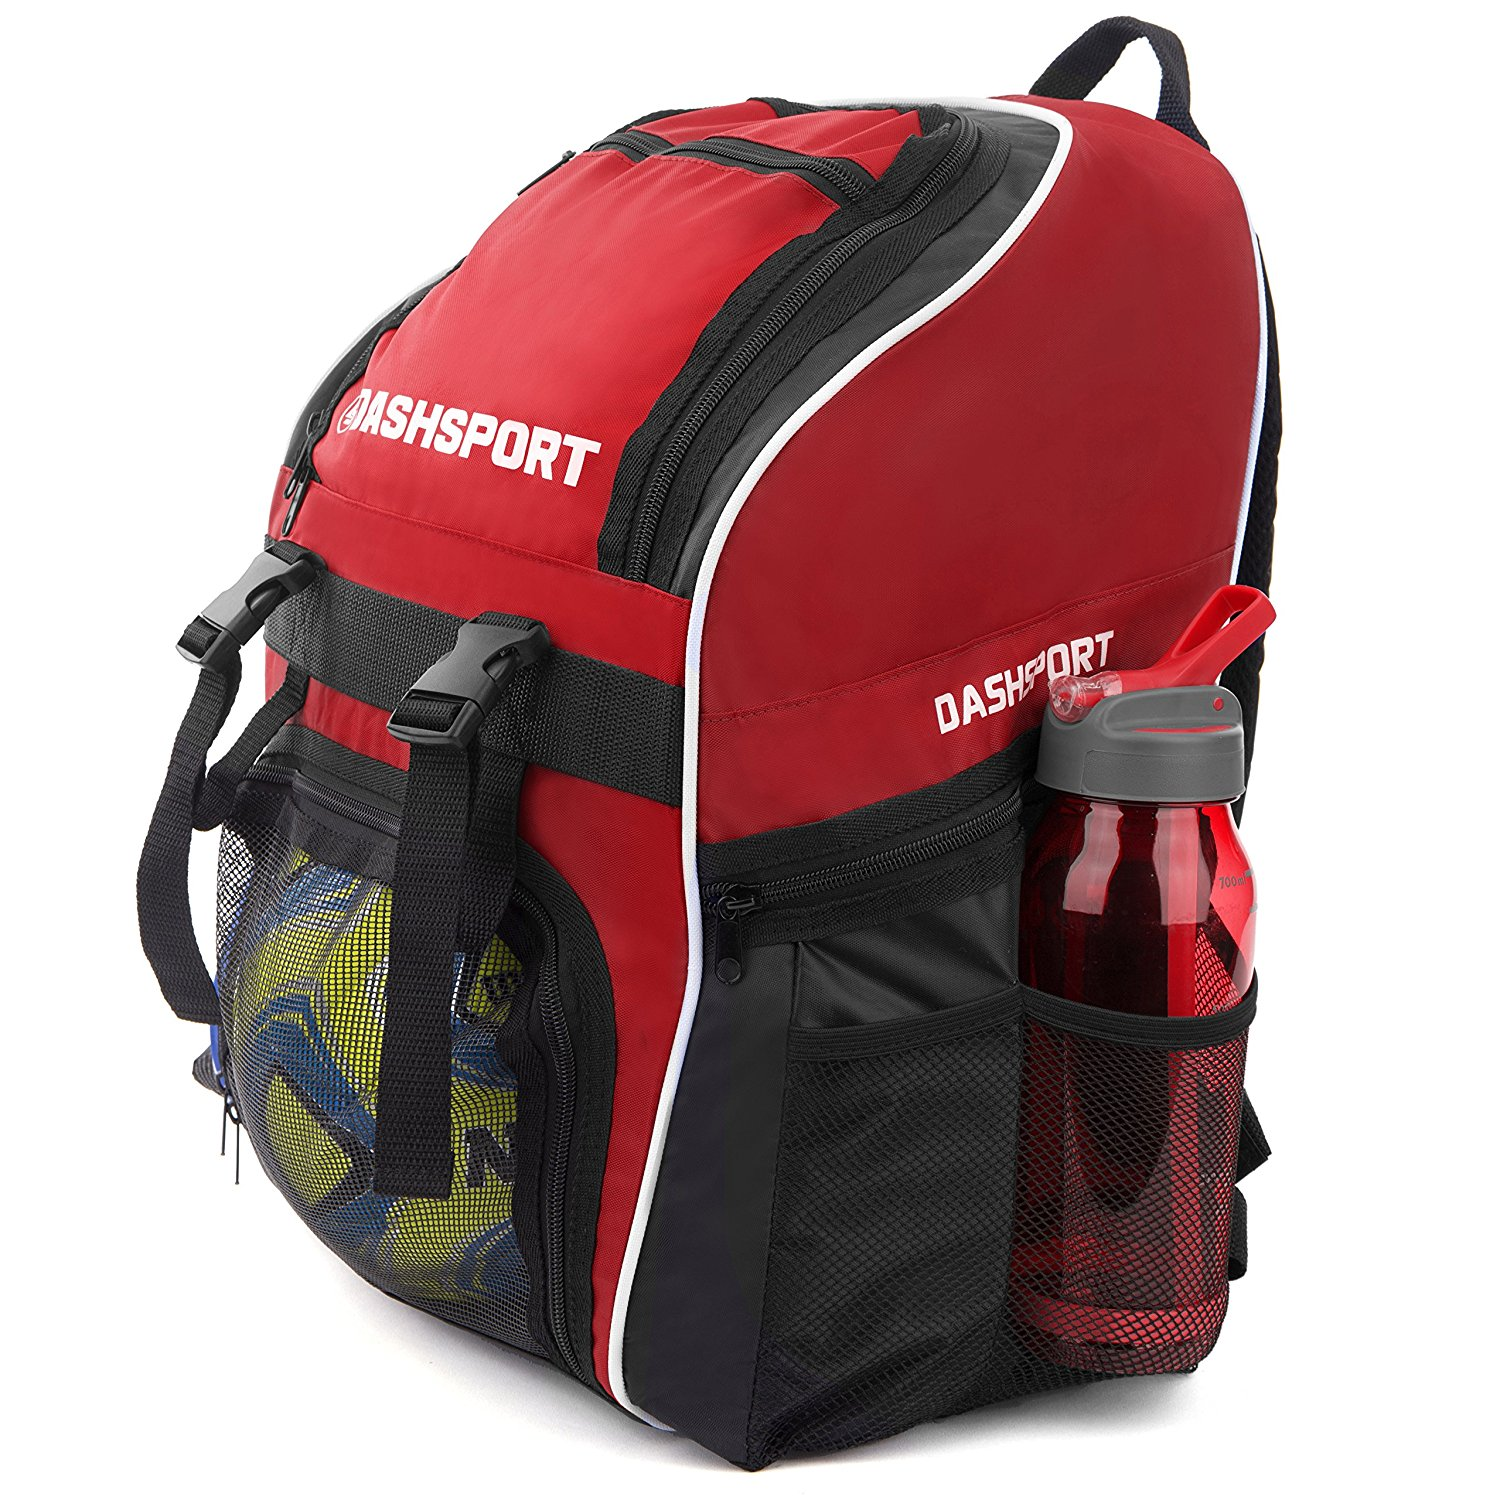 DashSport all sports bag gym tote soccer futbol